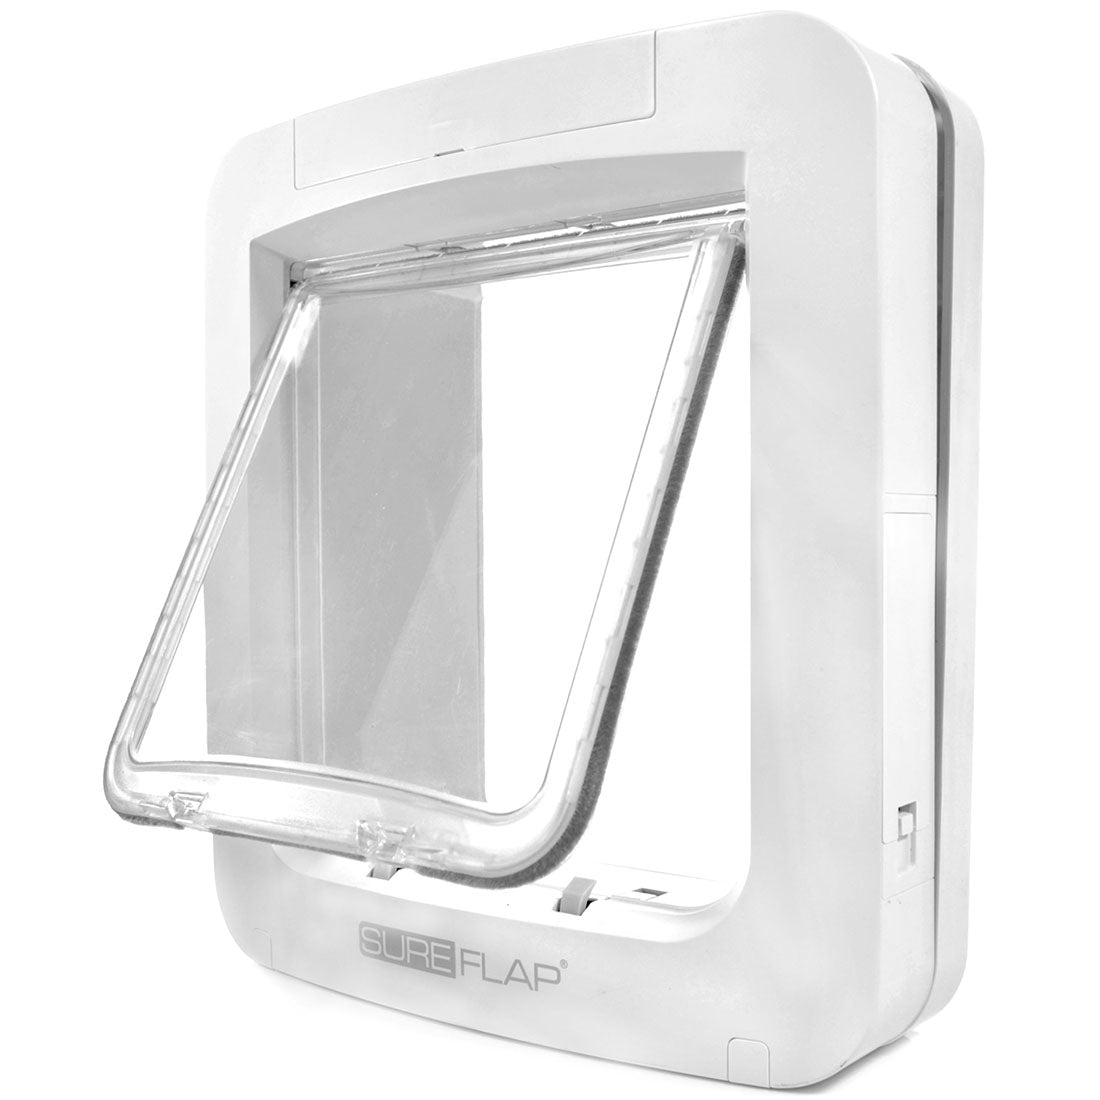 The Sureflap electronic smart door is a great cat flap for households with multiple pets.